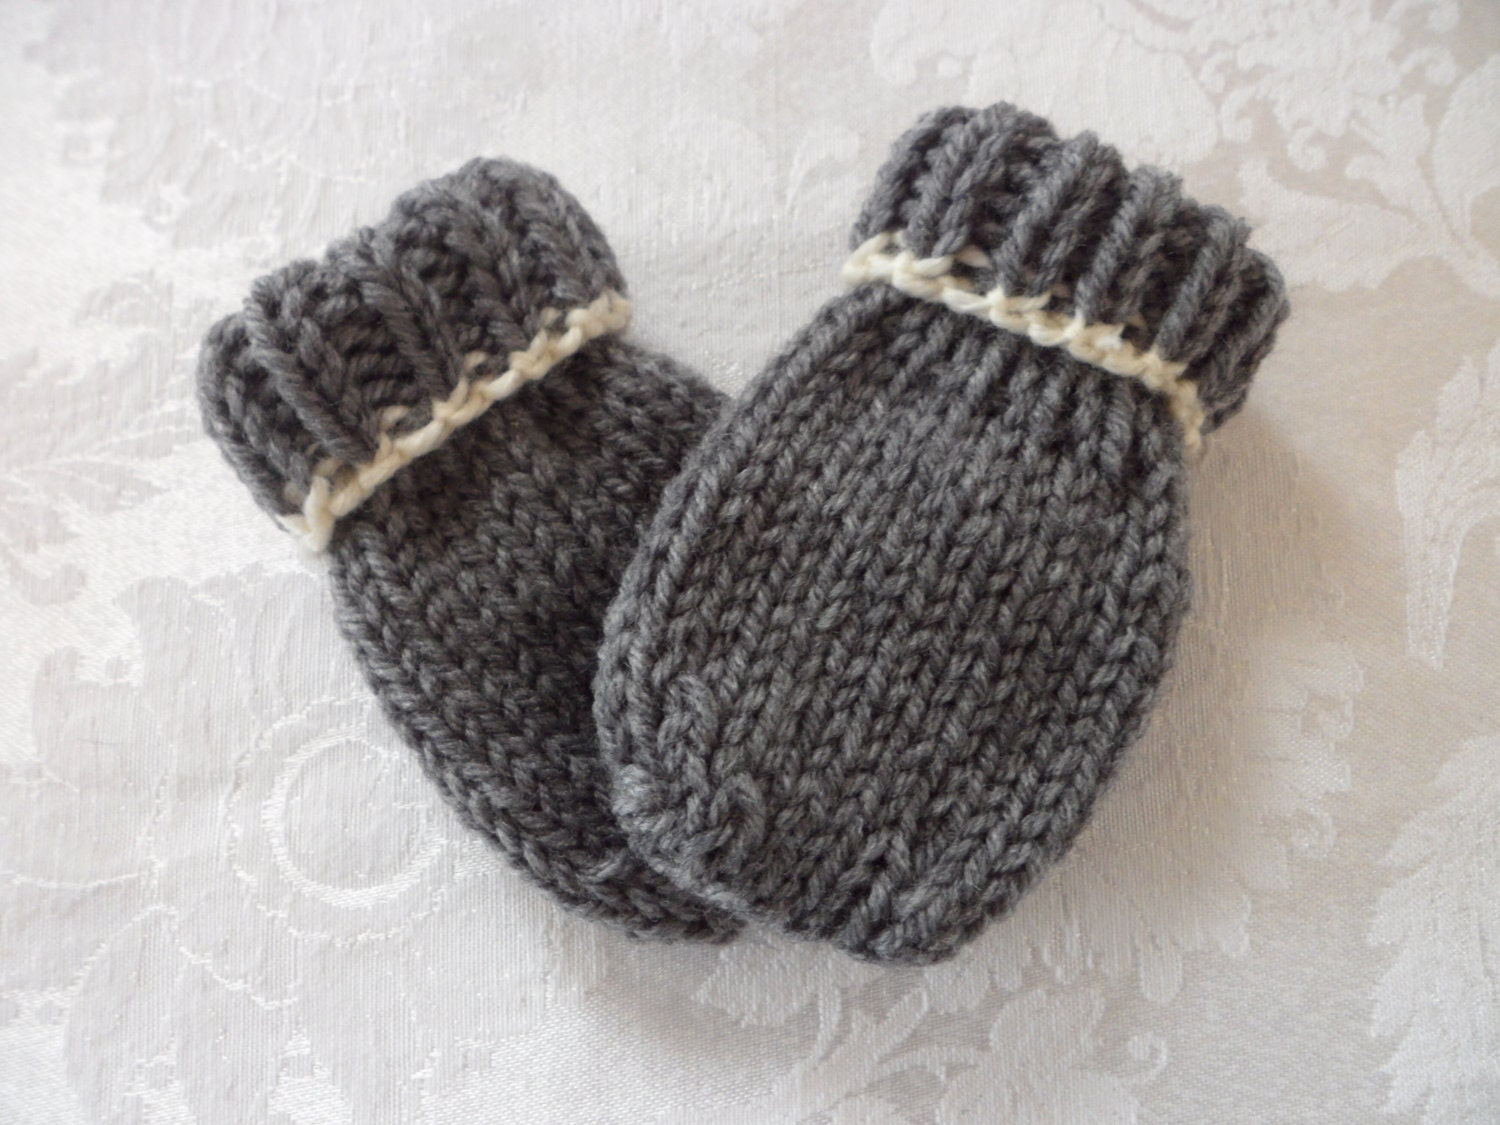 Knitting Pattern For Thumbless Mittens : Baby Mittens Thumbless Hand Knit in Sizes by handknitted4you